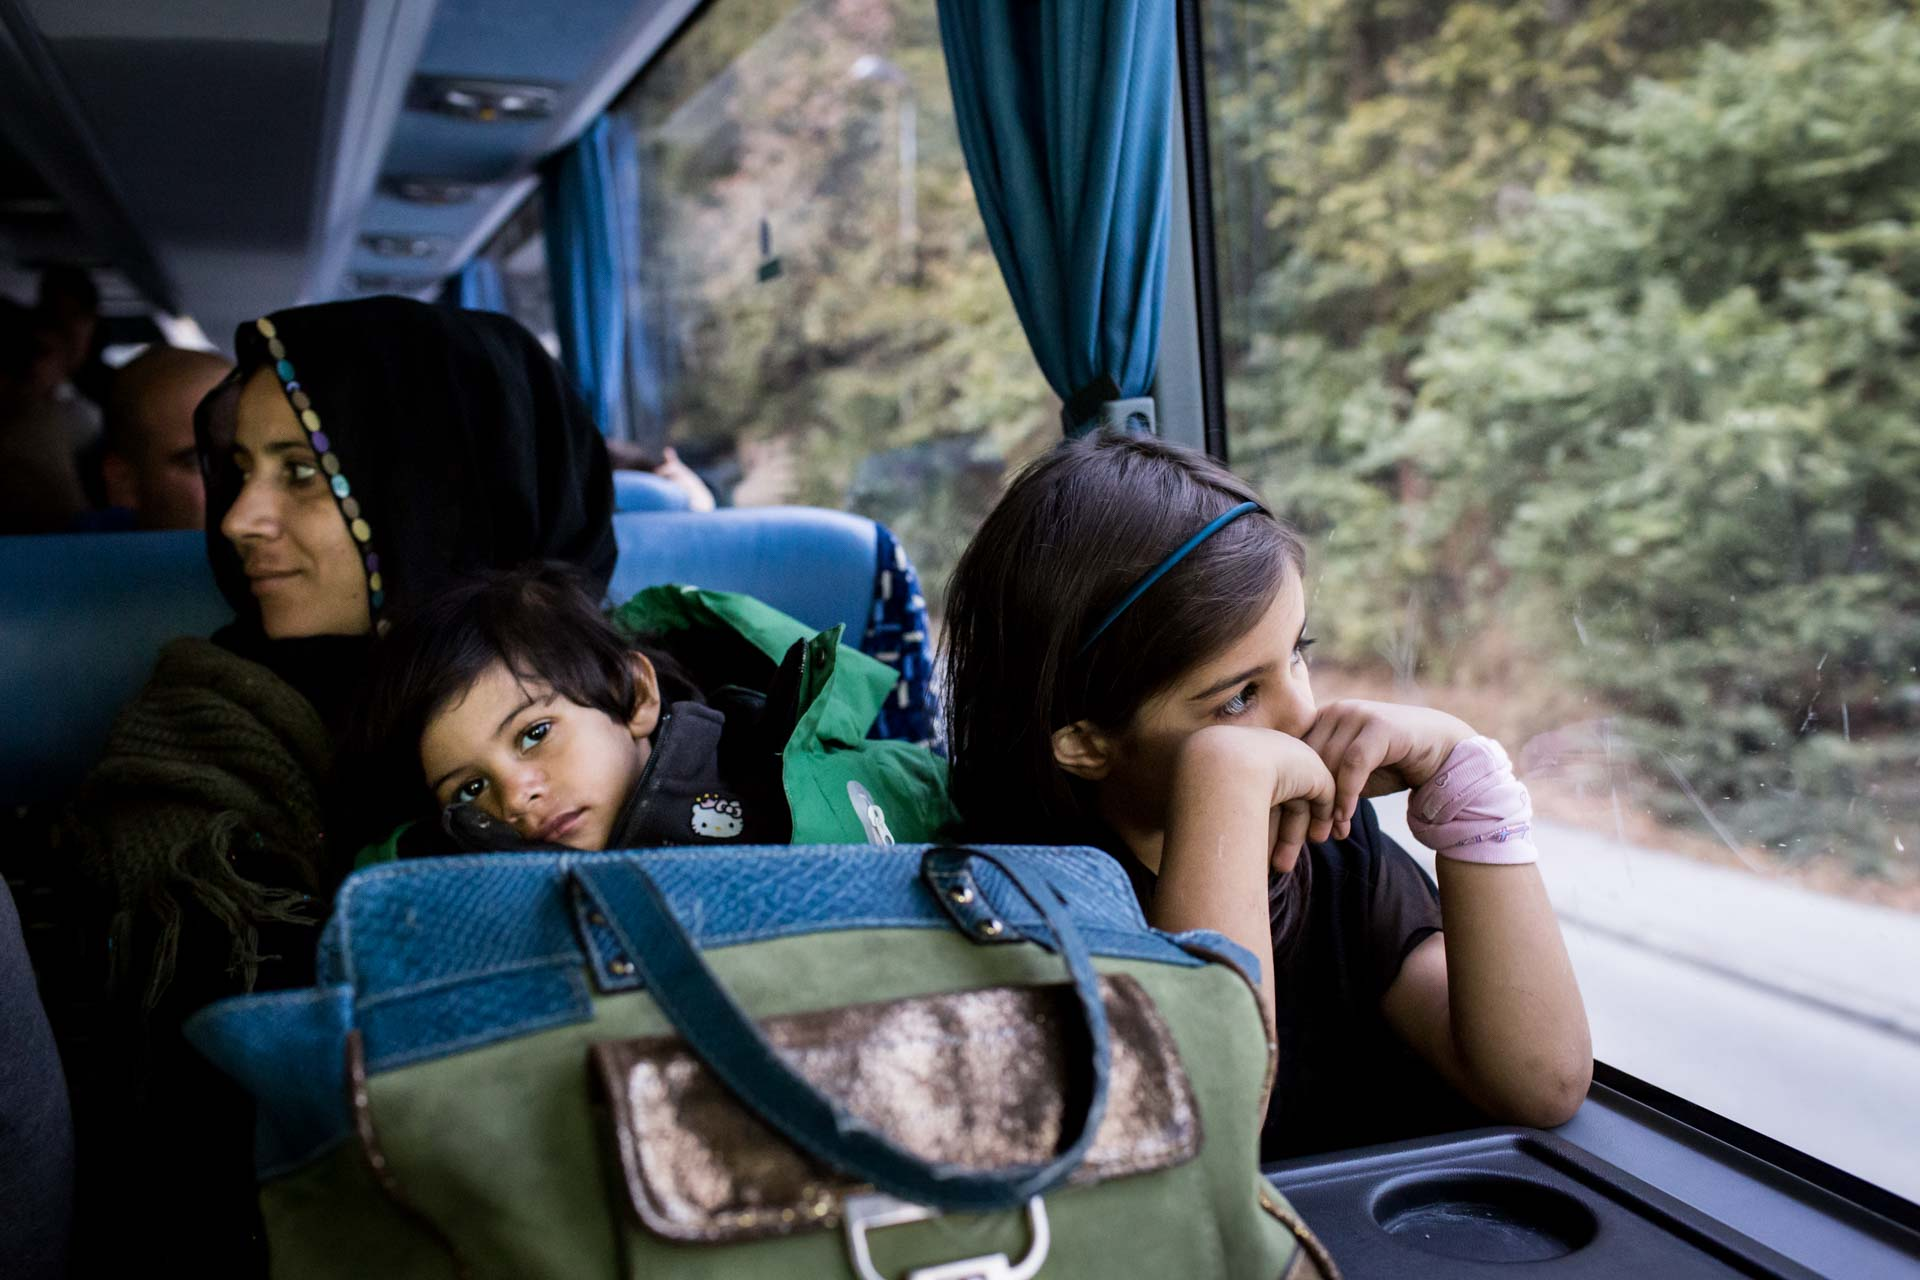 A family from Iraq sits in a bus of the German federal police in Passau, Germany, on their way to a processing center, where they will get a transport to an asylum center to apply for refugee status.